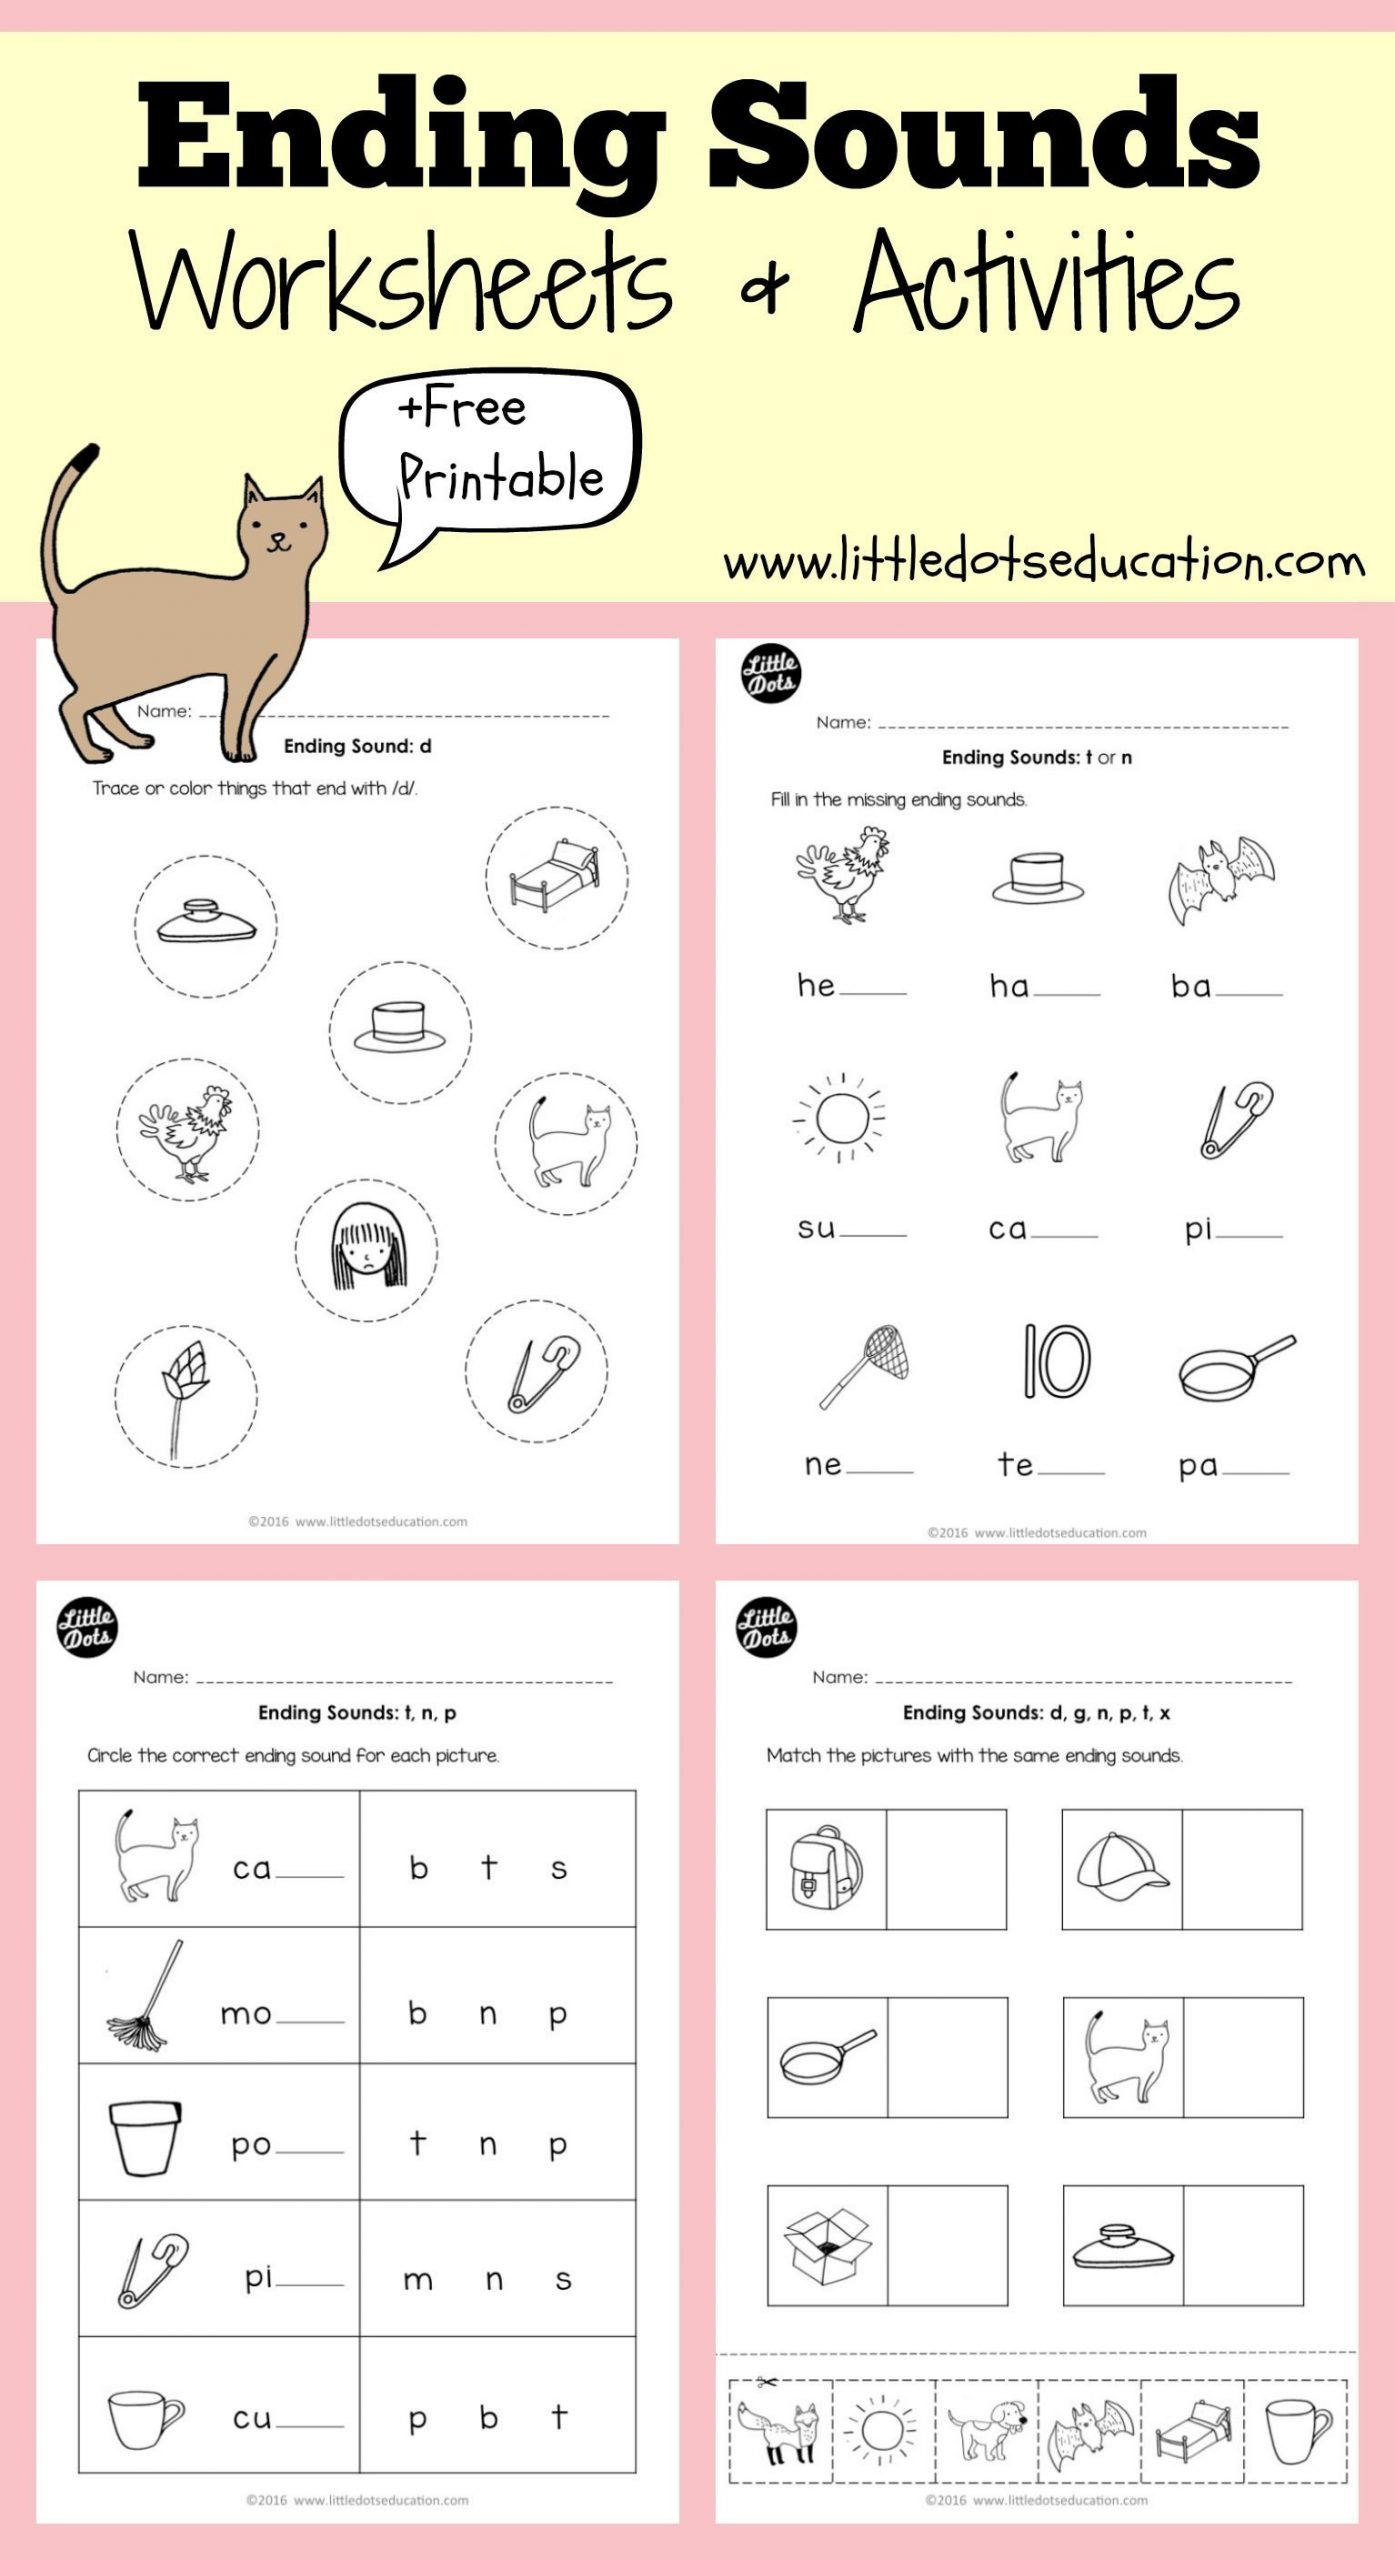 Ending sound Worksheets Free Ending sounds Worksheets and Activities